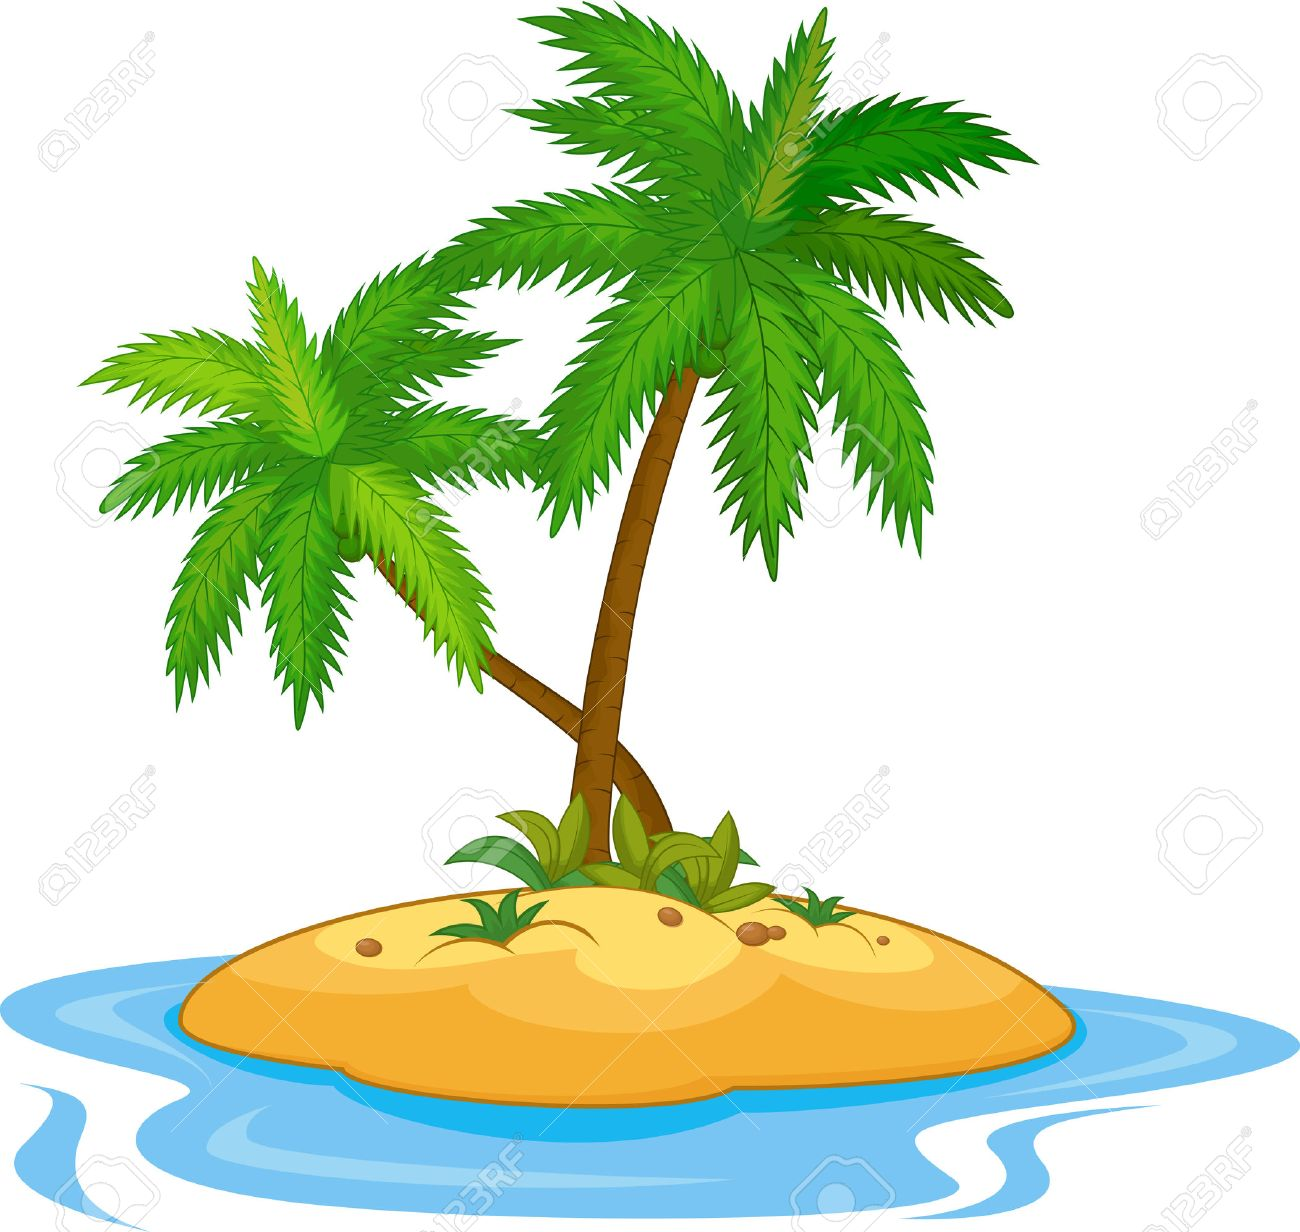 tropical island cartoon royalty free cliparts vectors and stock rh 123rf com tropical island clipart black and white free tropical island clipart images